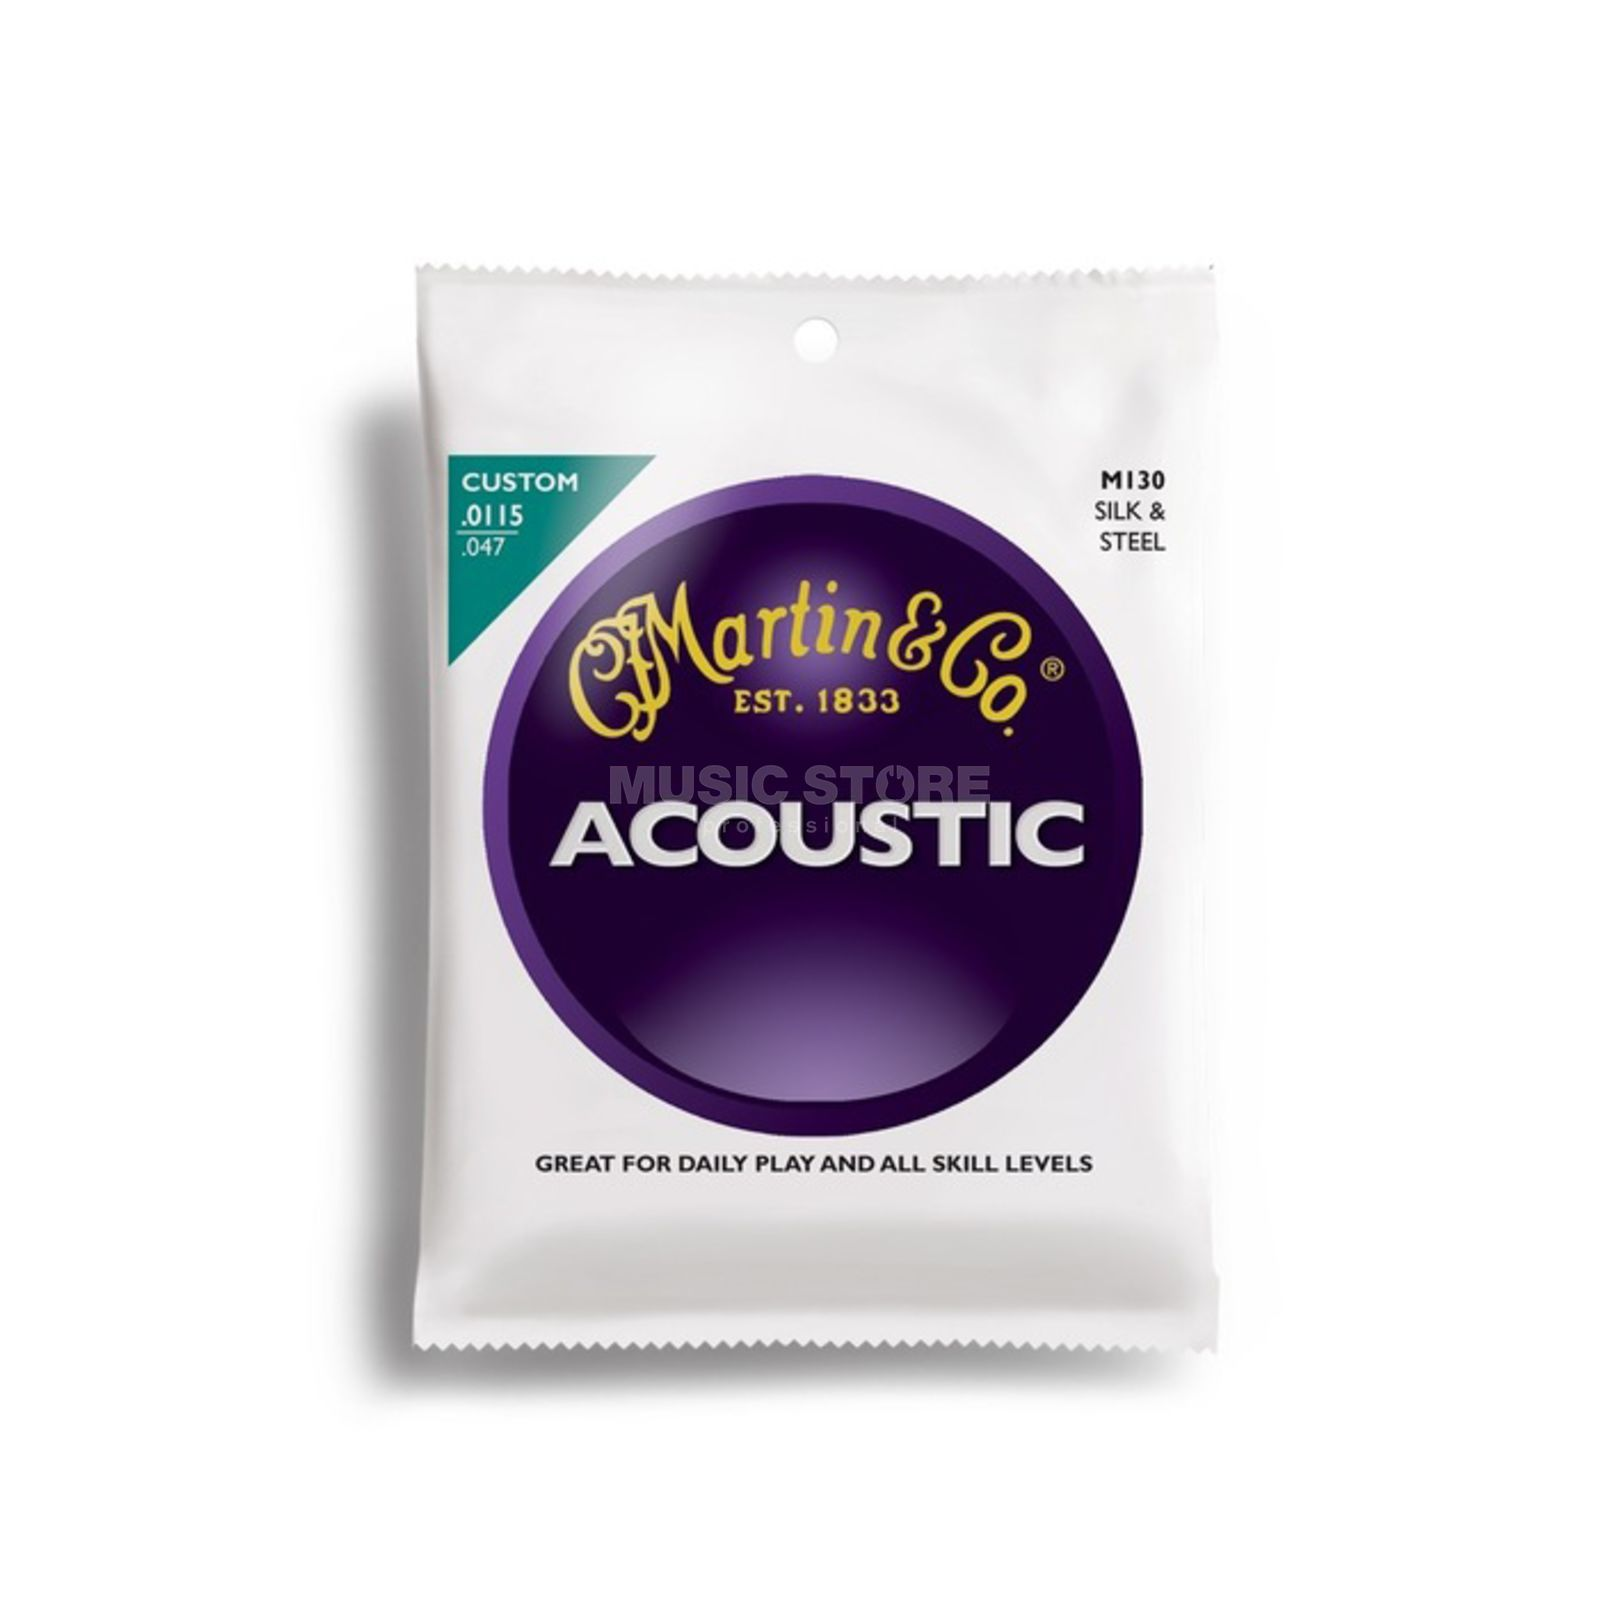 Martin Guitars A-Guitar Strings 115-47 M130 Silk & Steel Изображение товара